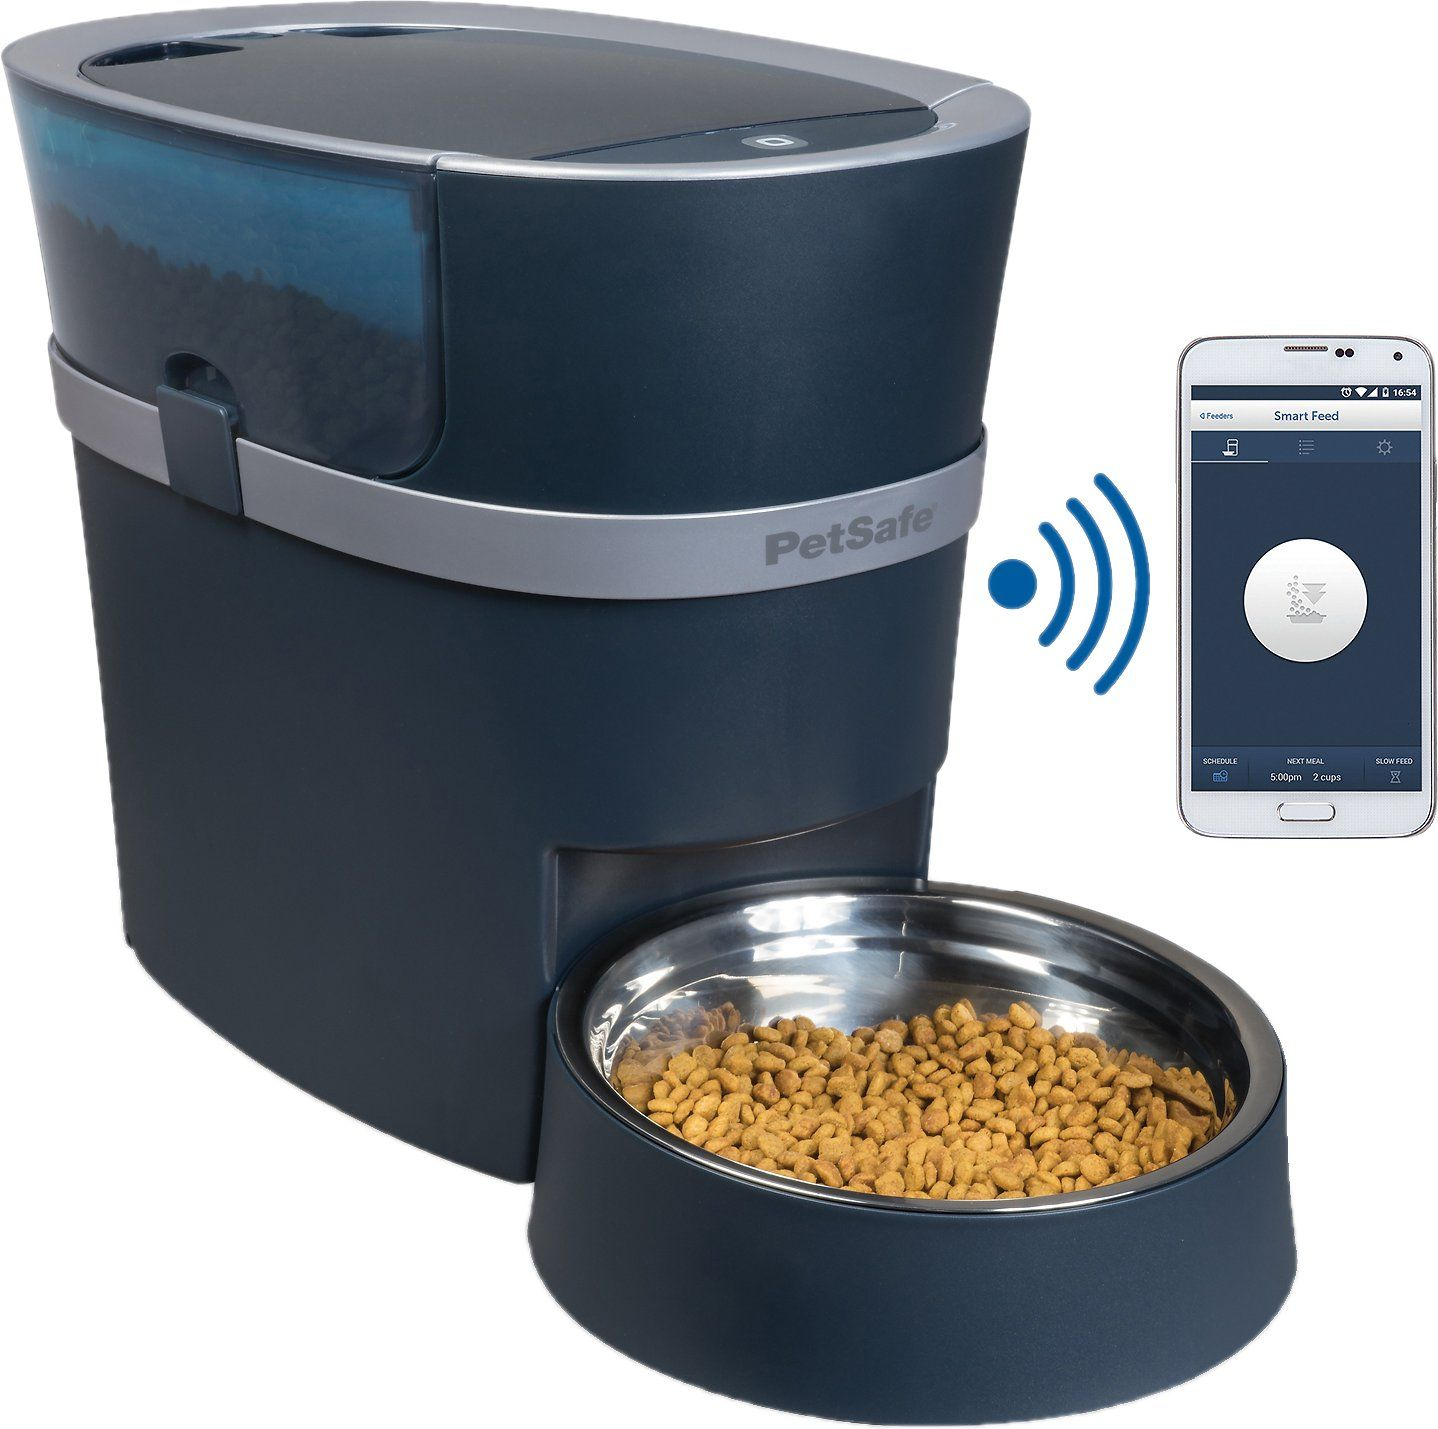 PetSafe Smart Feed Automatic Pet Feeder for iPhone